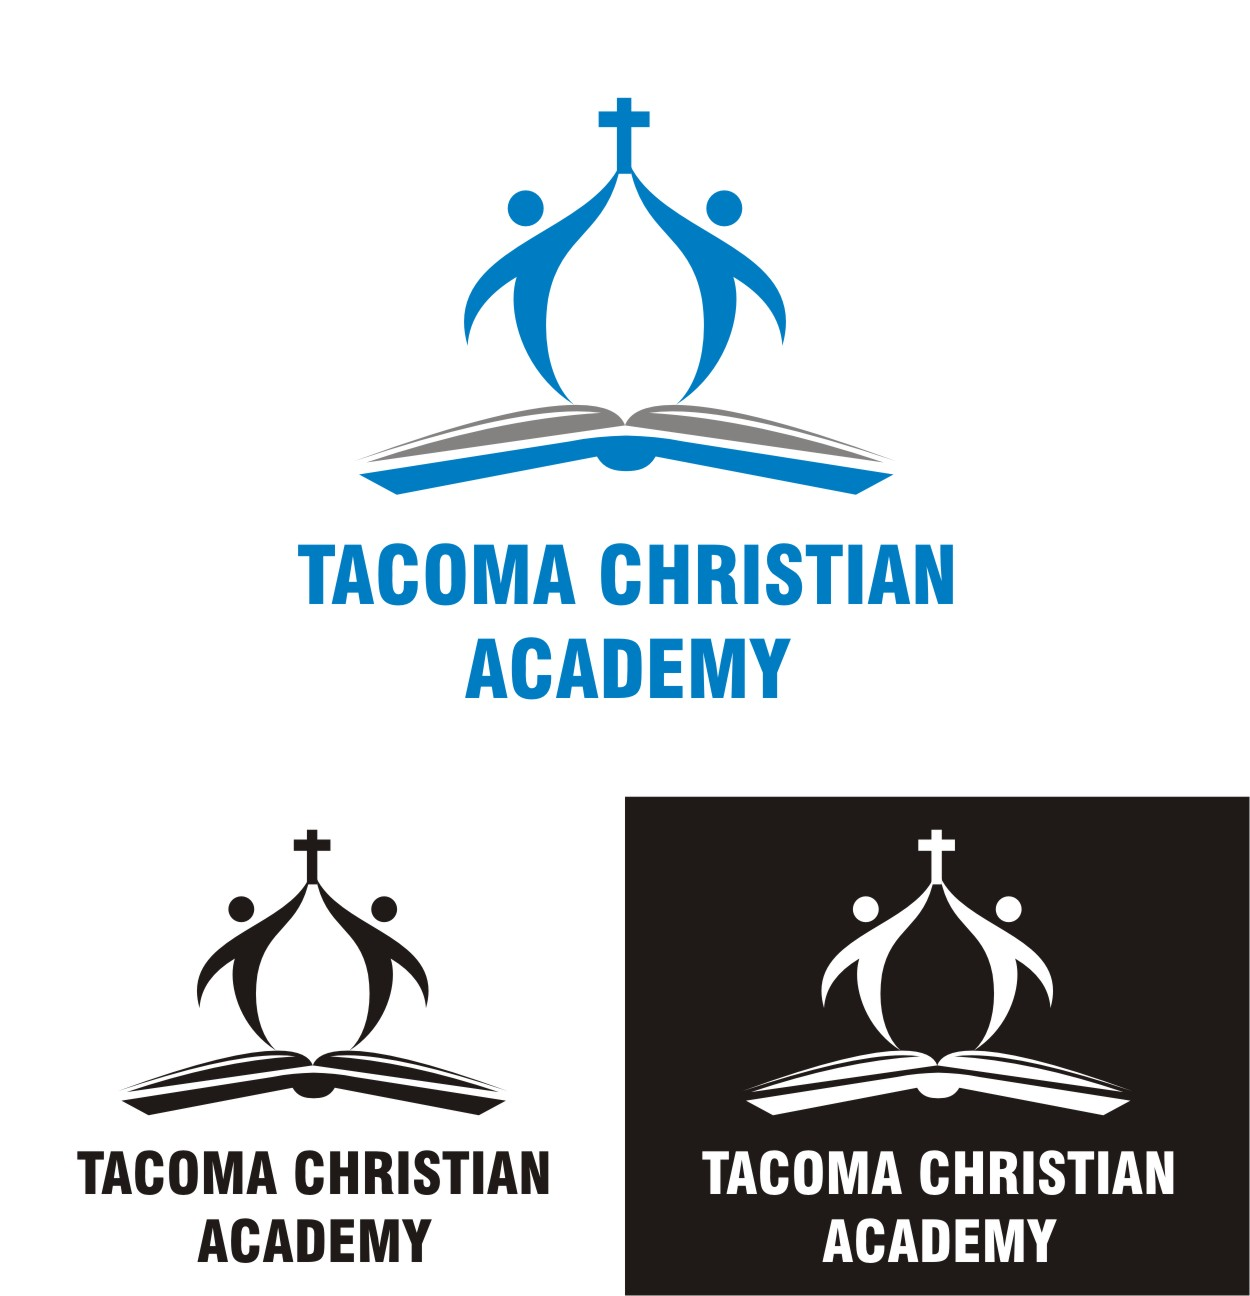 Logo Design by Spider Graphics - Entry No. 27 in the Logo Design Contest Imaginative Logo Design for Tacoma Christian Academy.